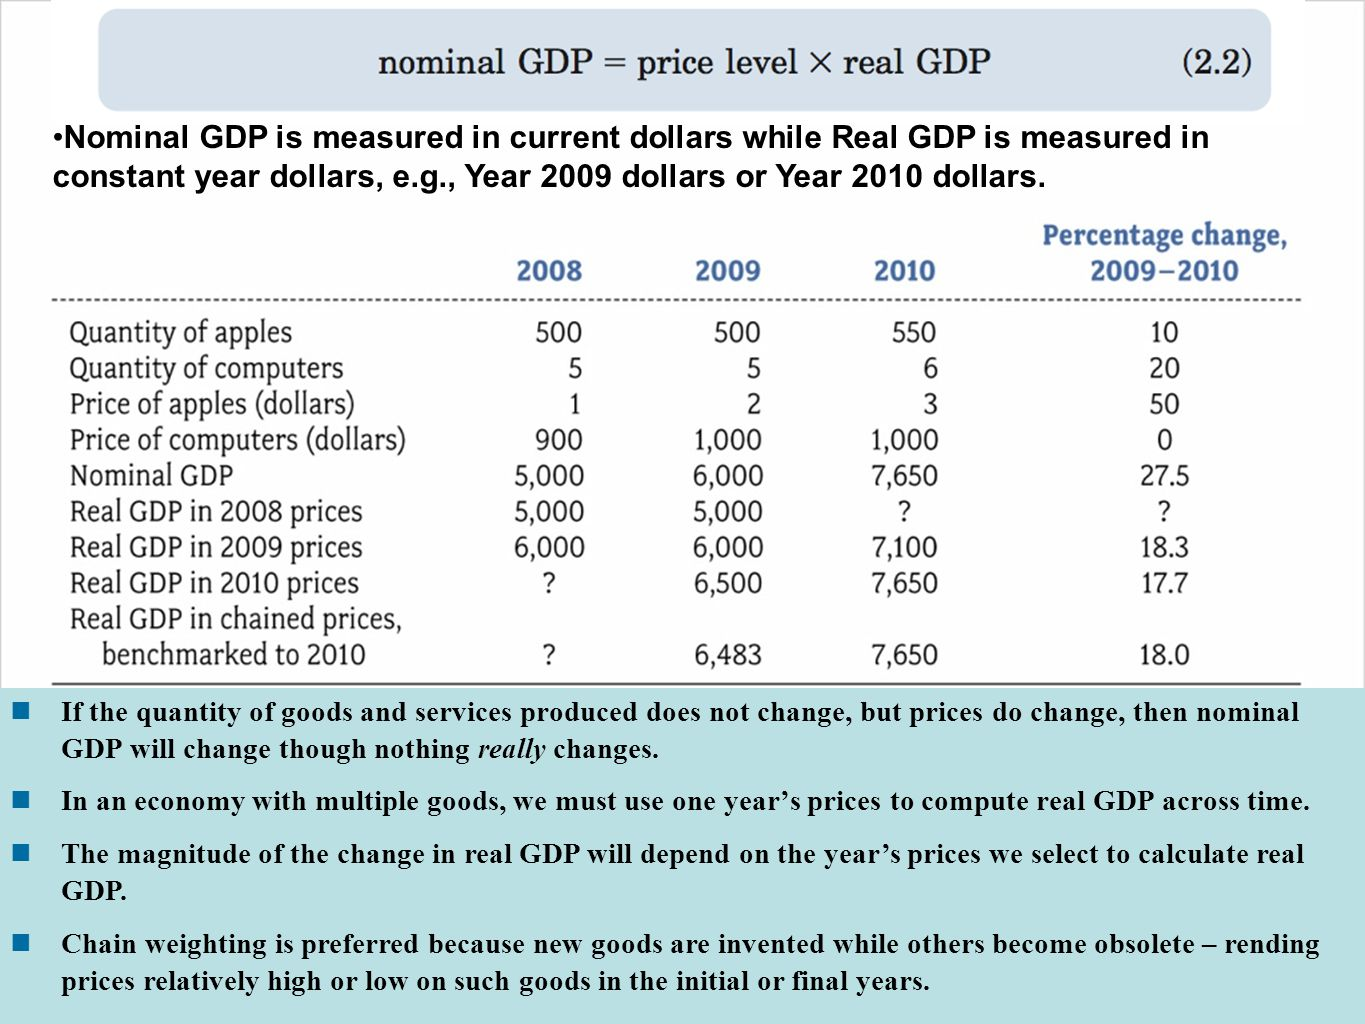 Nominal GDP is measured in current dollars while Real GDP is measured in constant year dollars, e.g., Year 2009 dollars or Year 2010 dollars.